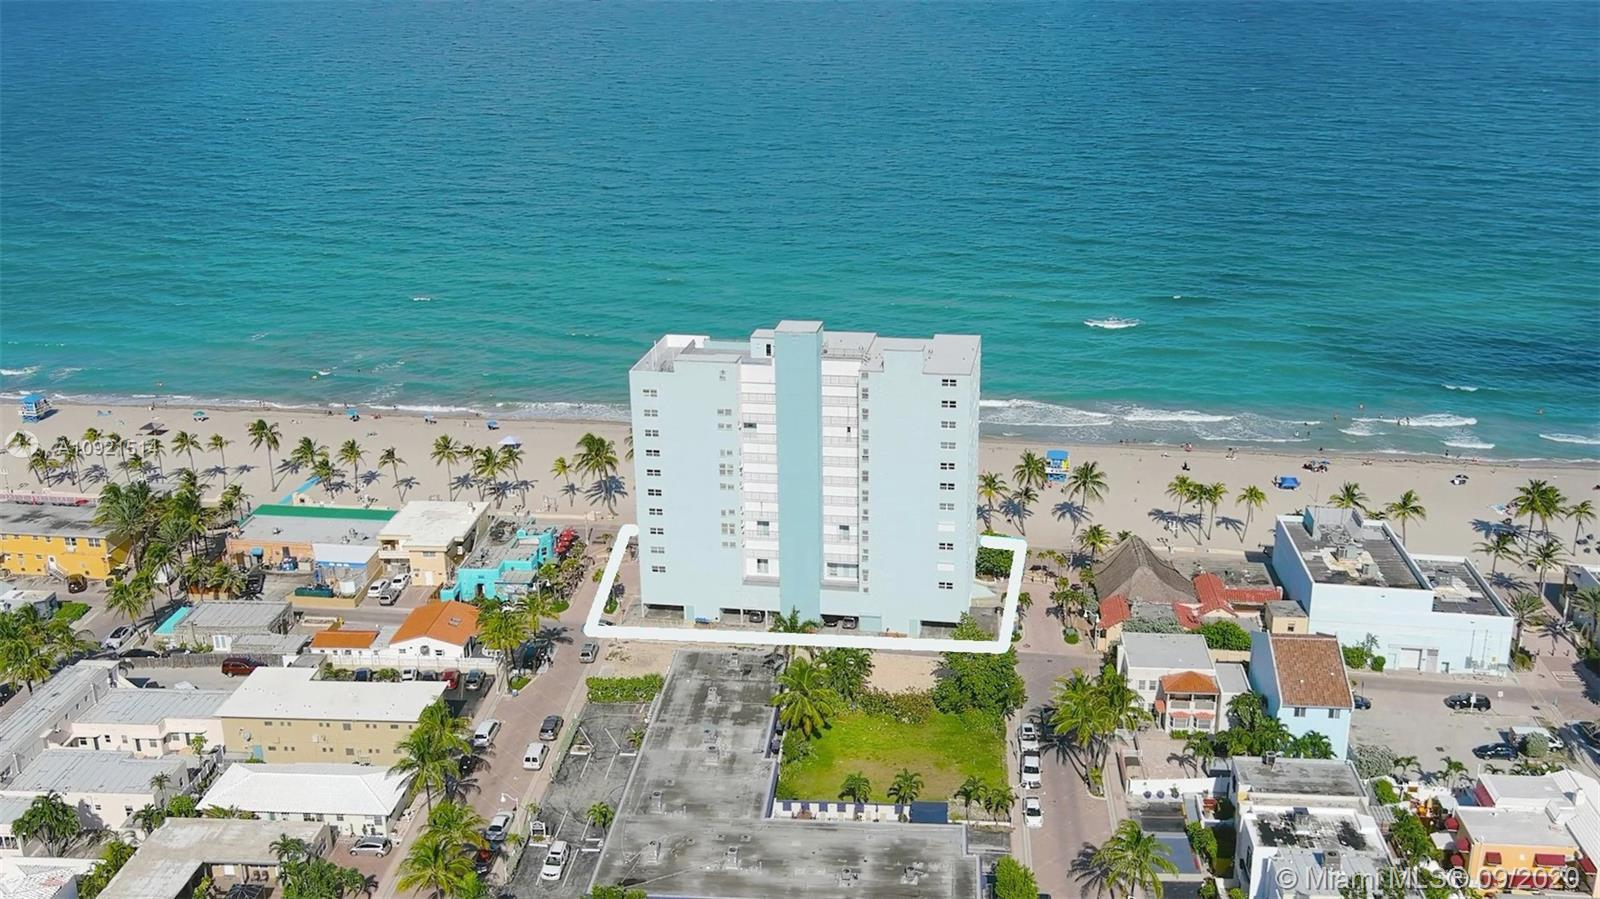 Walk out your front door and enjoy all the restaurants and beach access that Hollywood Beach has to